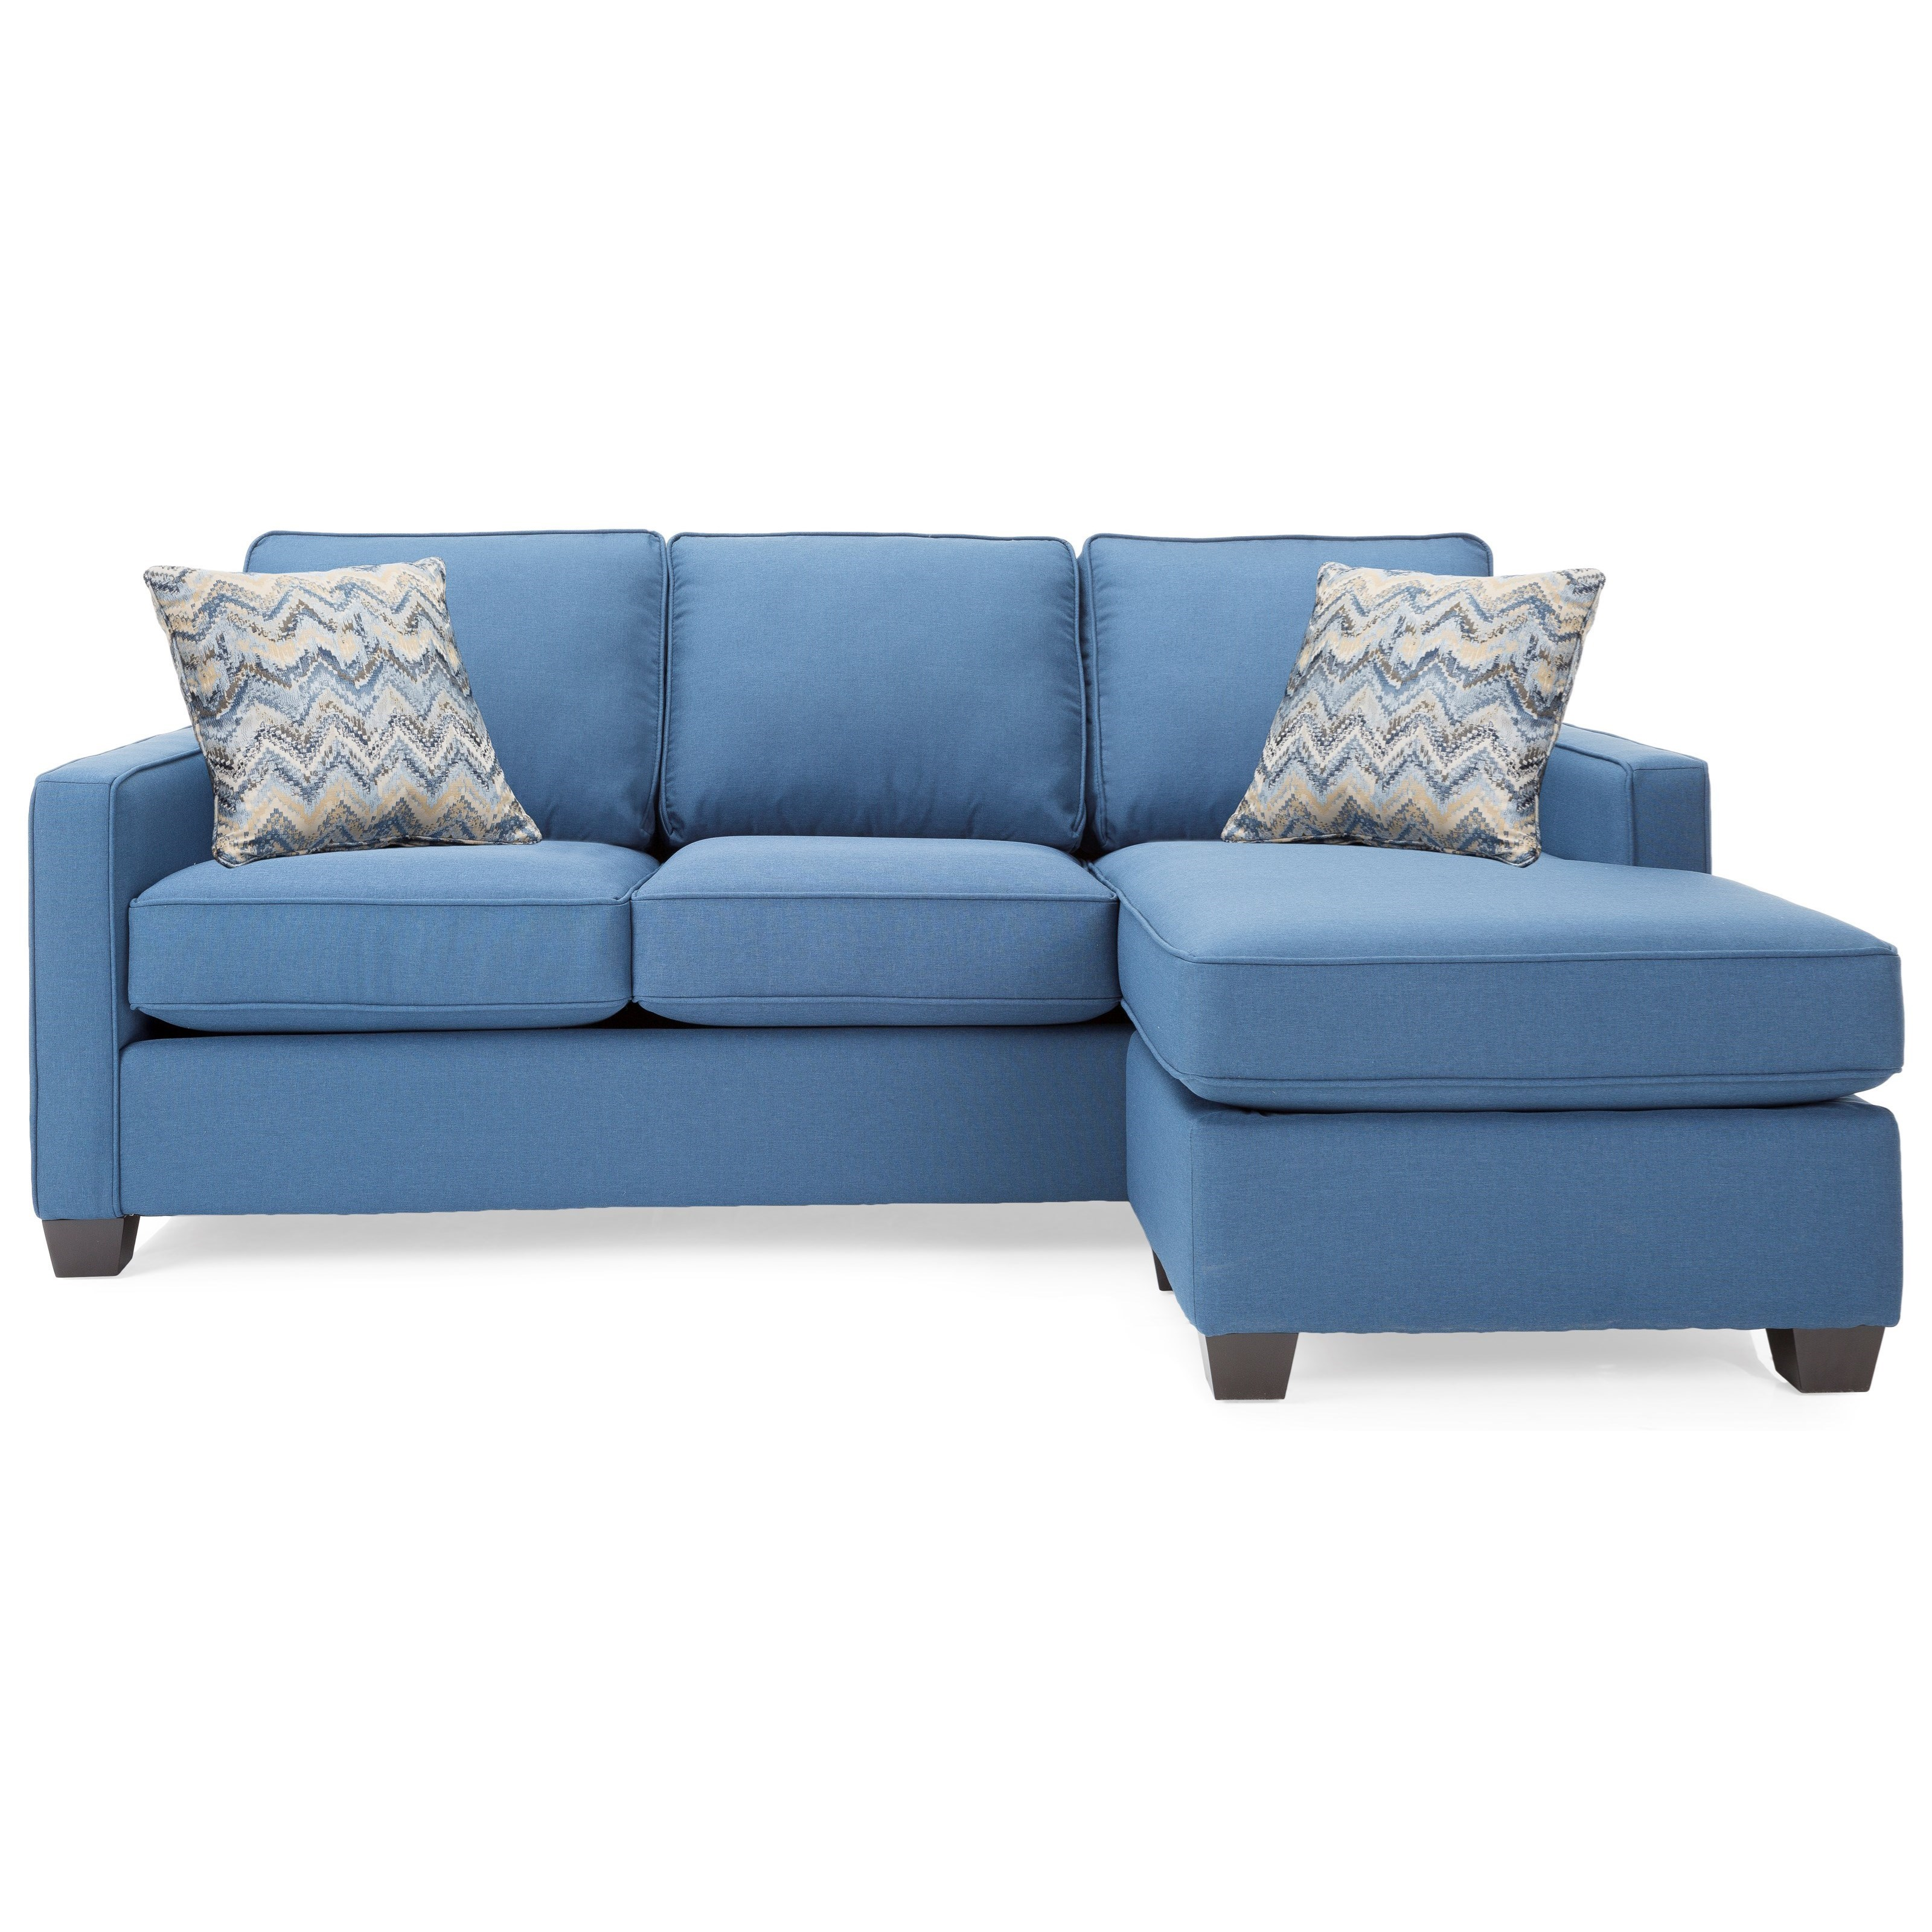 Decor Rest 2855 Contemporary Sofa With Chaise Stoney Creek